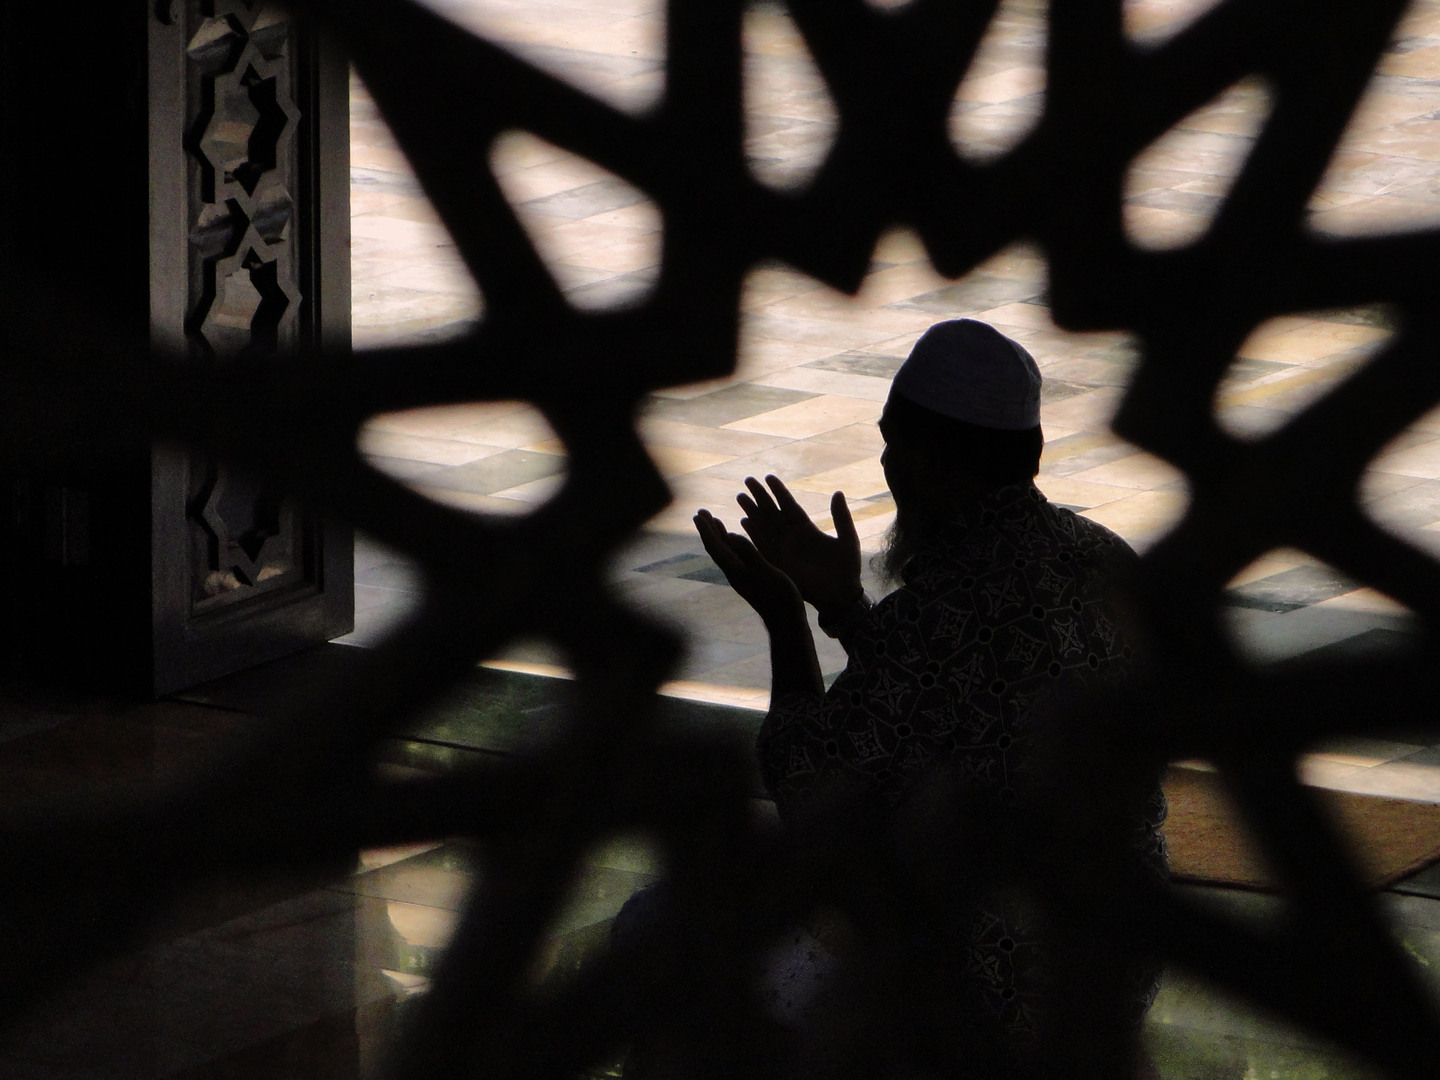 """Our Lord, forgive us and our brothers who preceded us in faith."" Listen to Tariq Ramadan reflecting on this supplication"